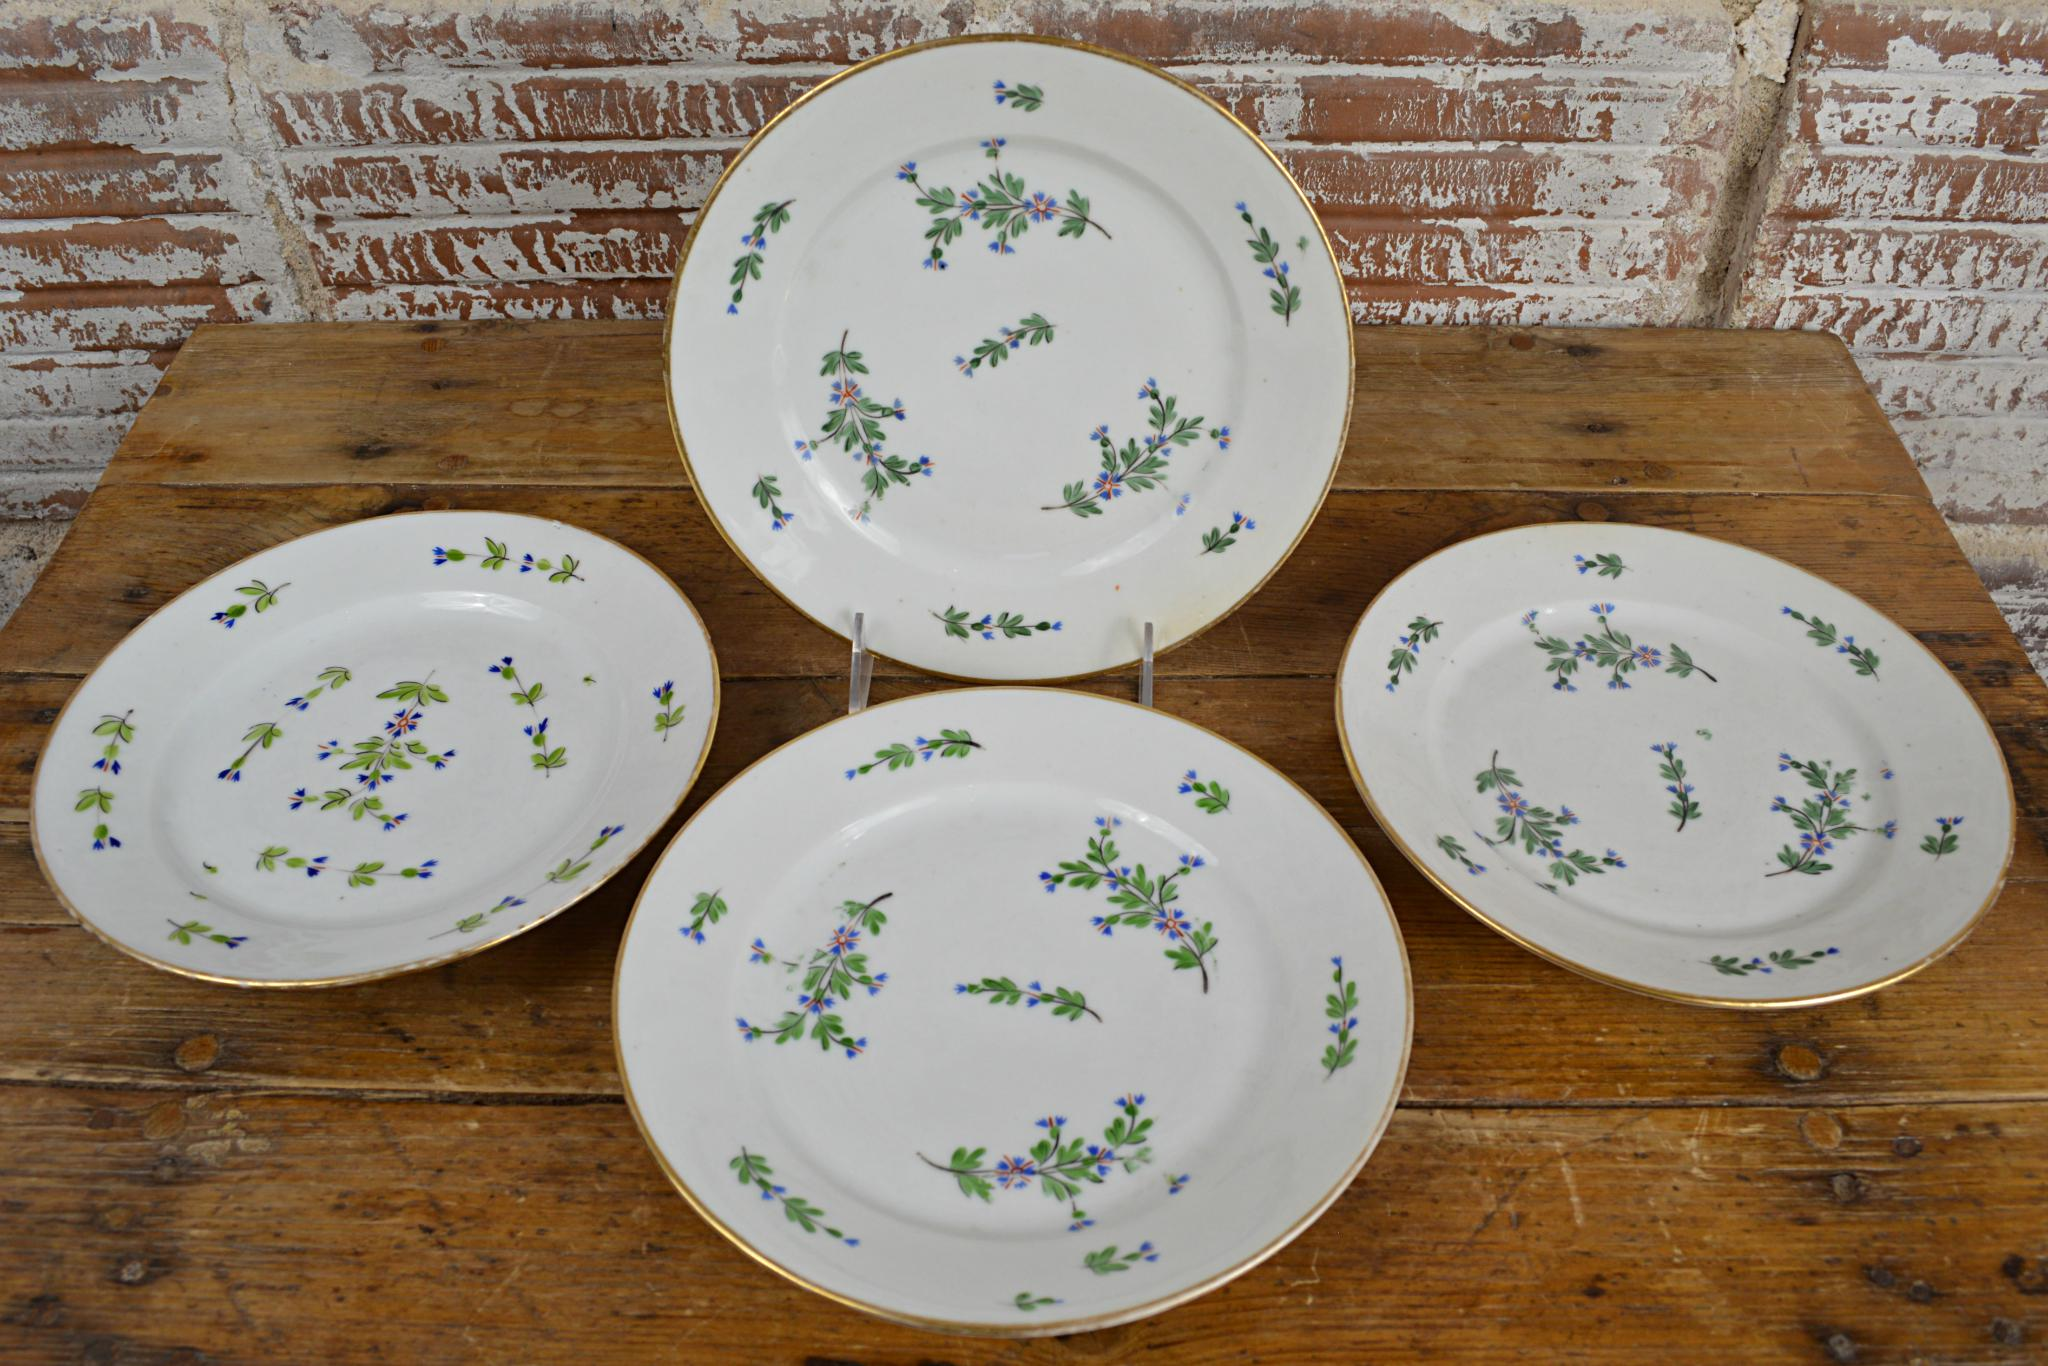 Antique Cornflower Sprig Old Paris Plates - Set of 4 - Image 9 of 10  sc 1 st  Chairish & Antique Cornflower Sprig Old Paris Plates - Set of 4 | Chairish